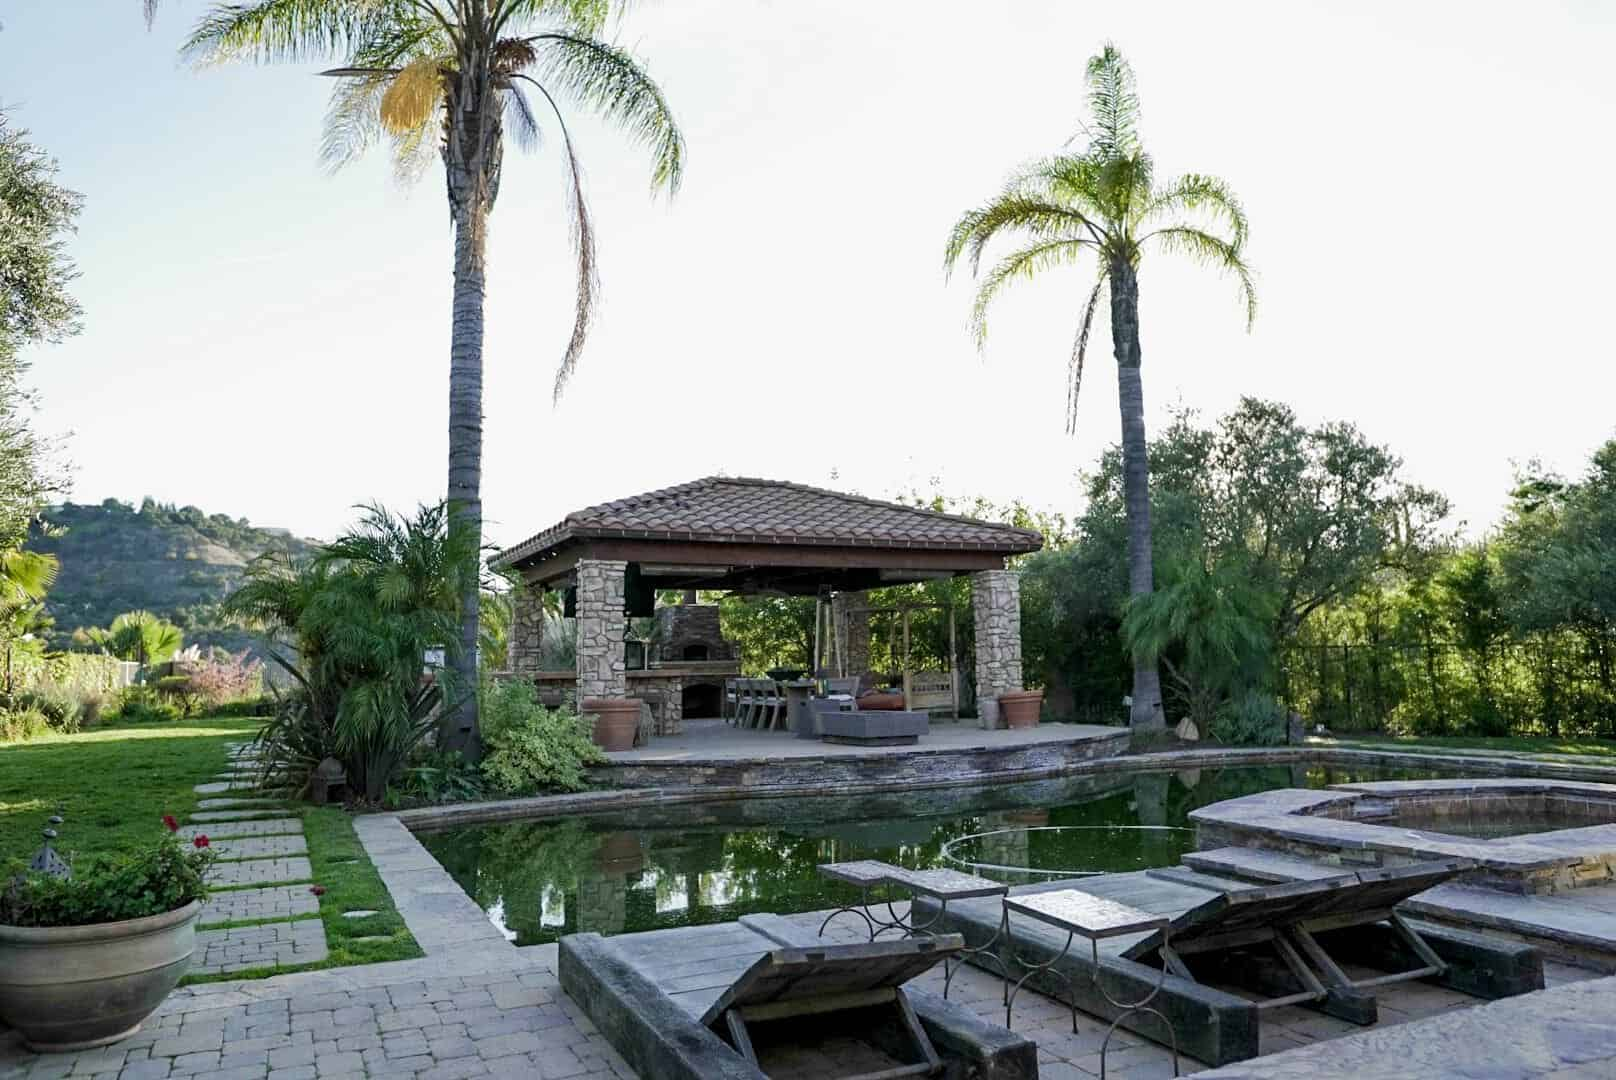 Here's the view of the swimming pool with a modern cabana on the side featuring an outdoor dining and kitchen. Images courtesy of Toptenrealestatedeals.com.